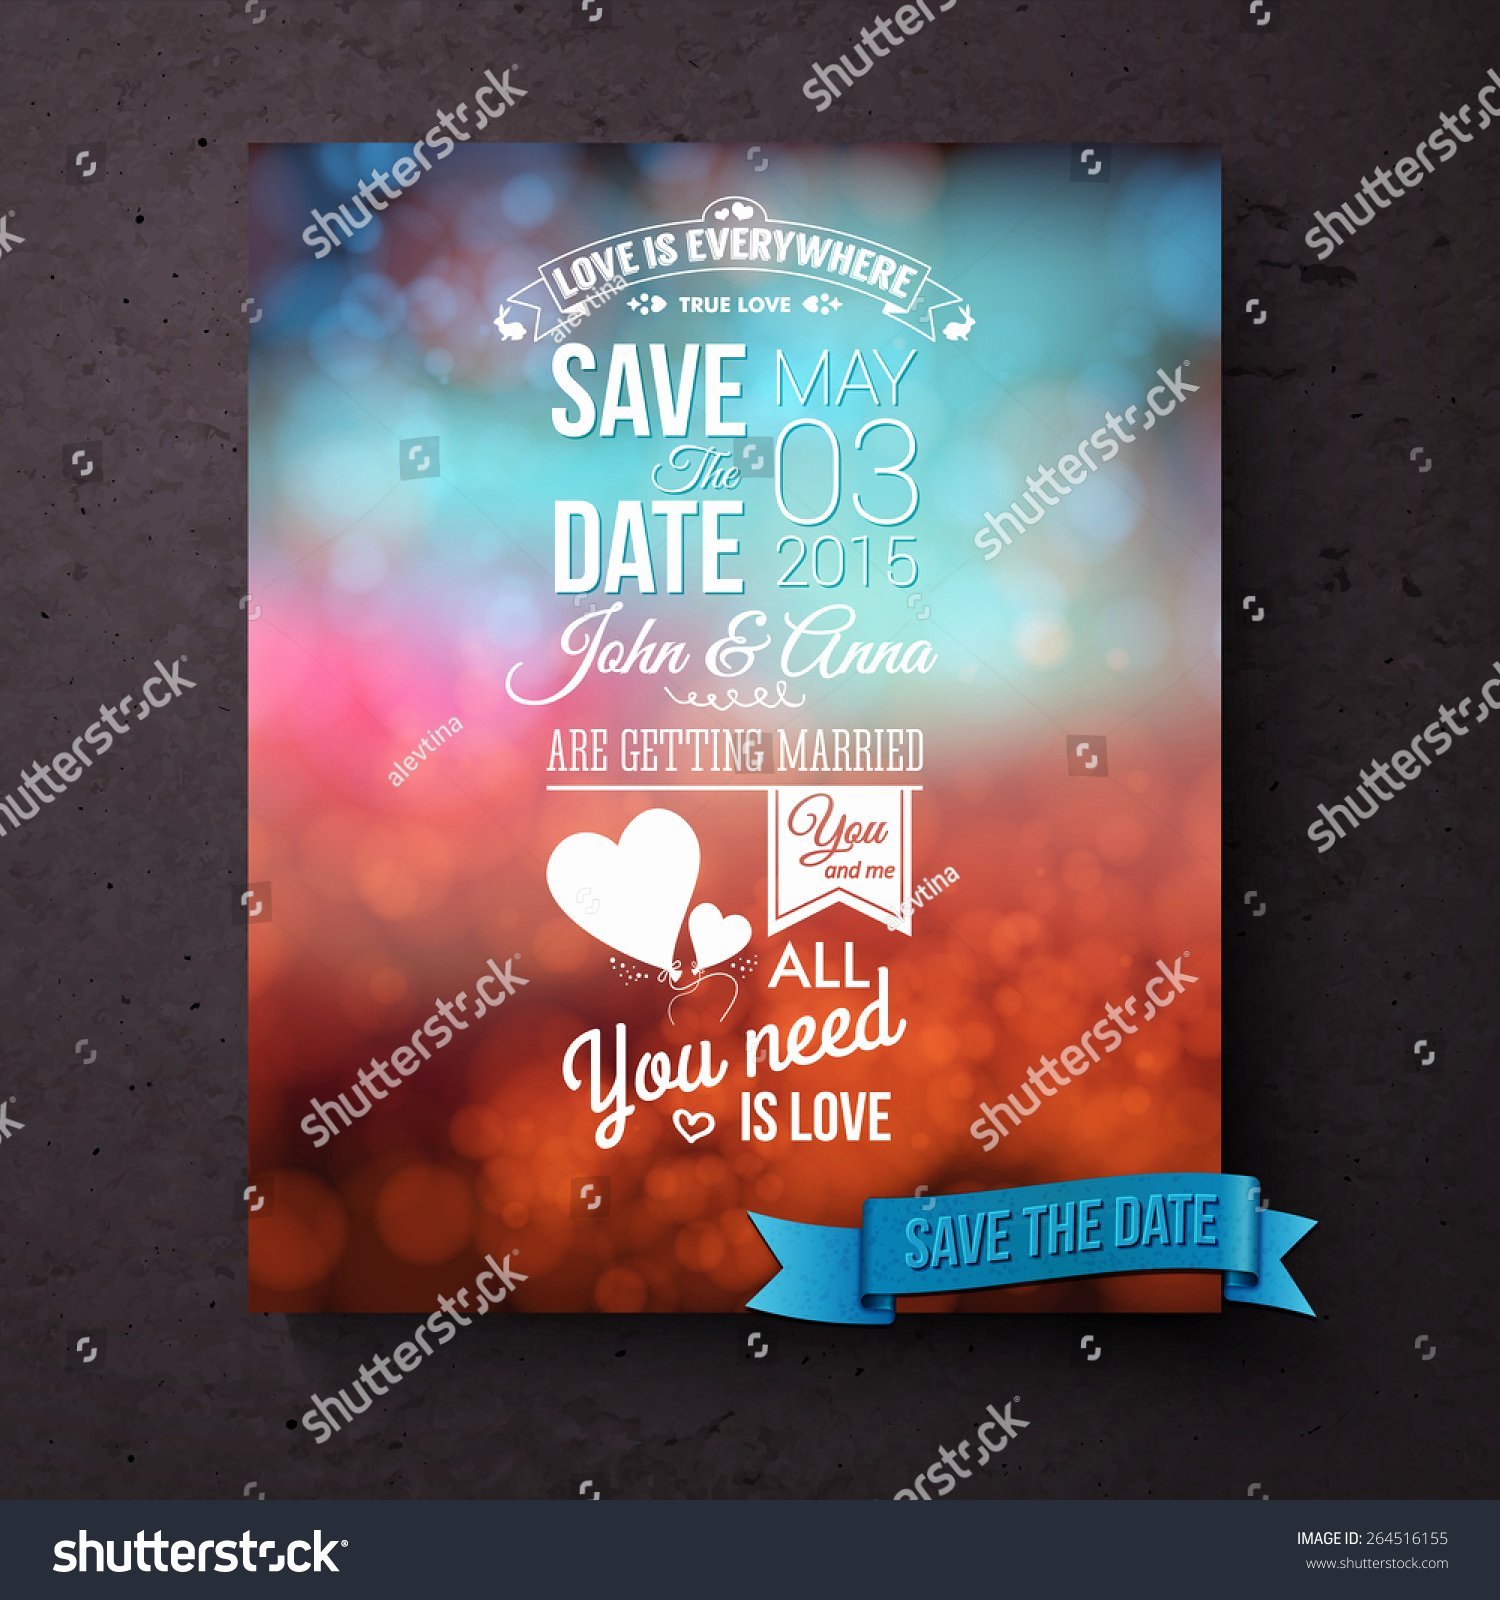 Save the Date Text Template New Save the Date Vector Wedding Template with Stylish White